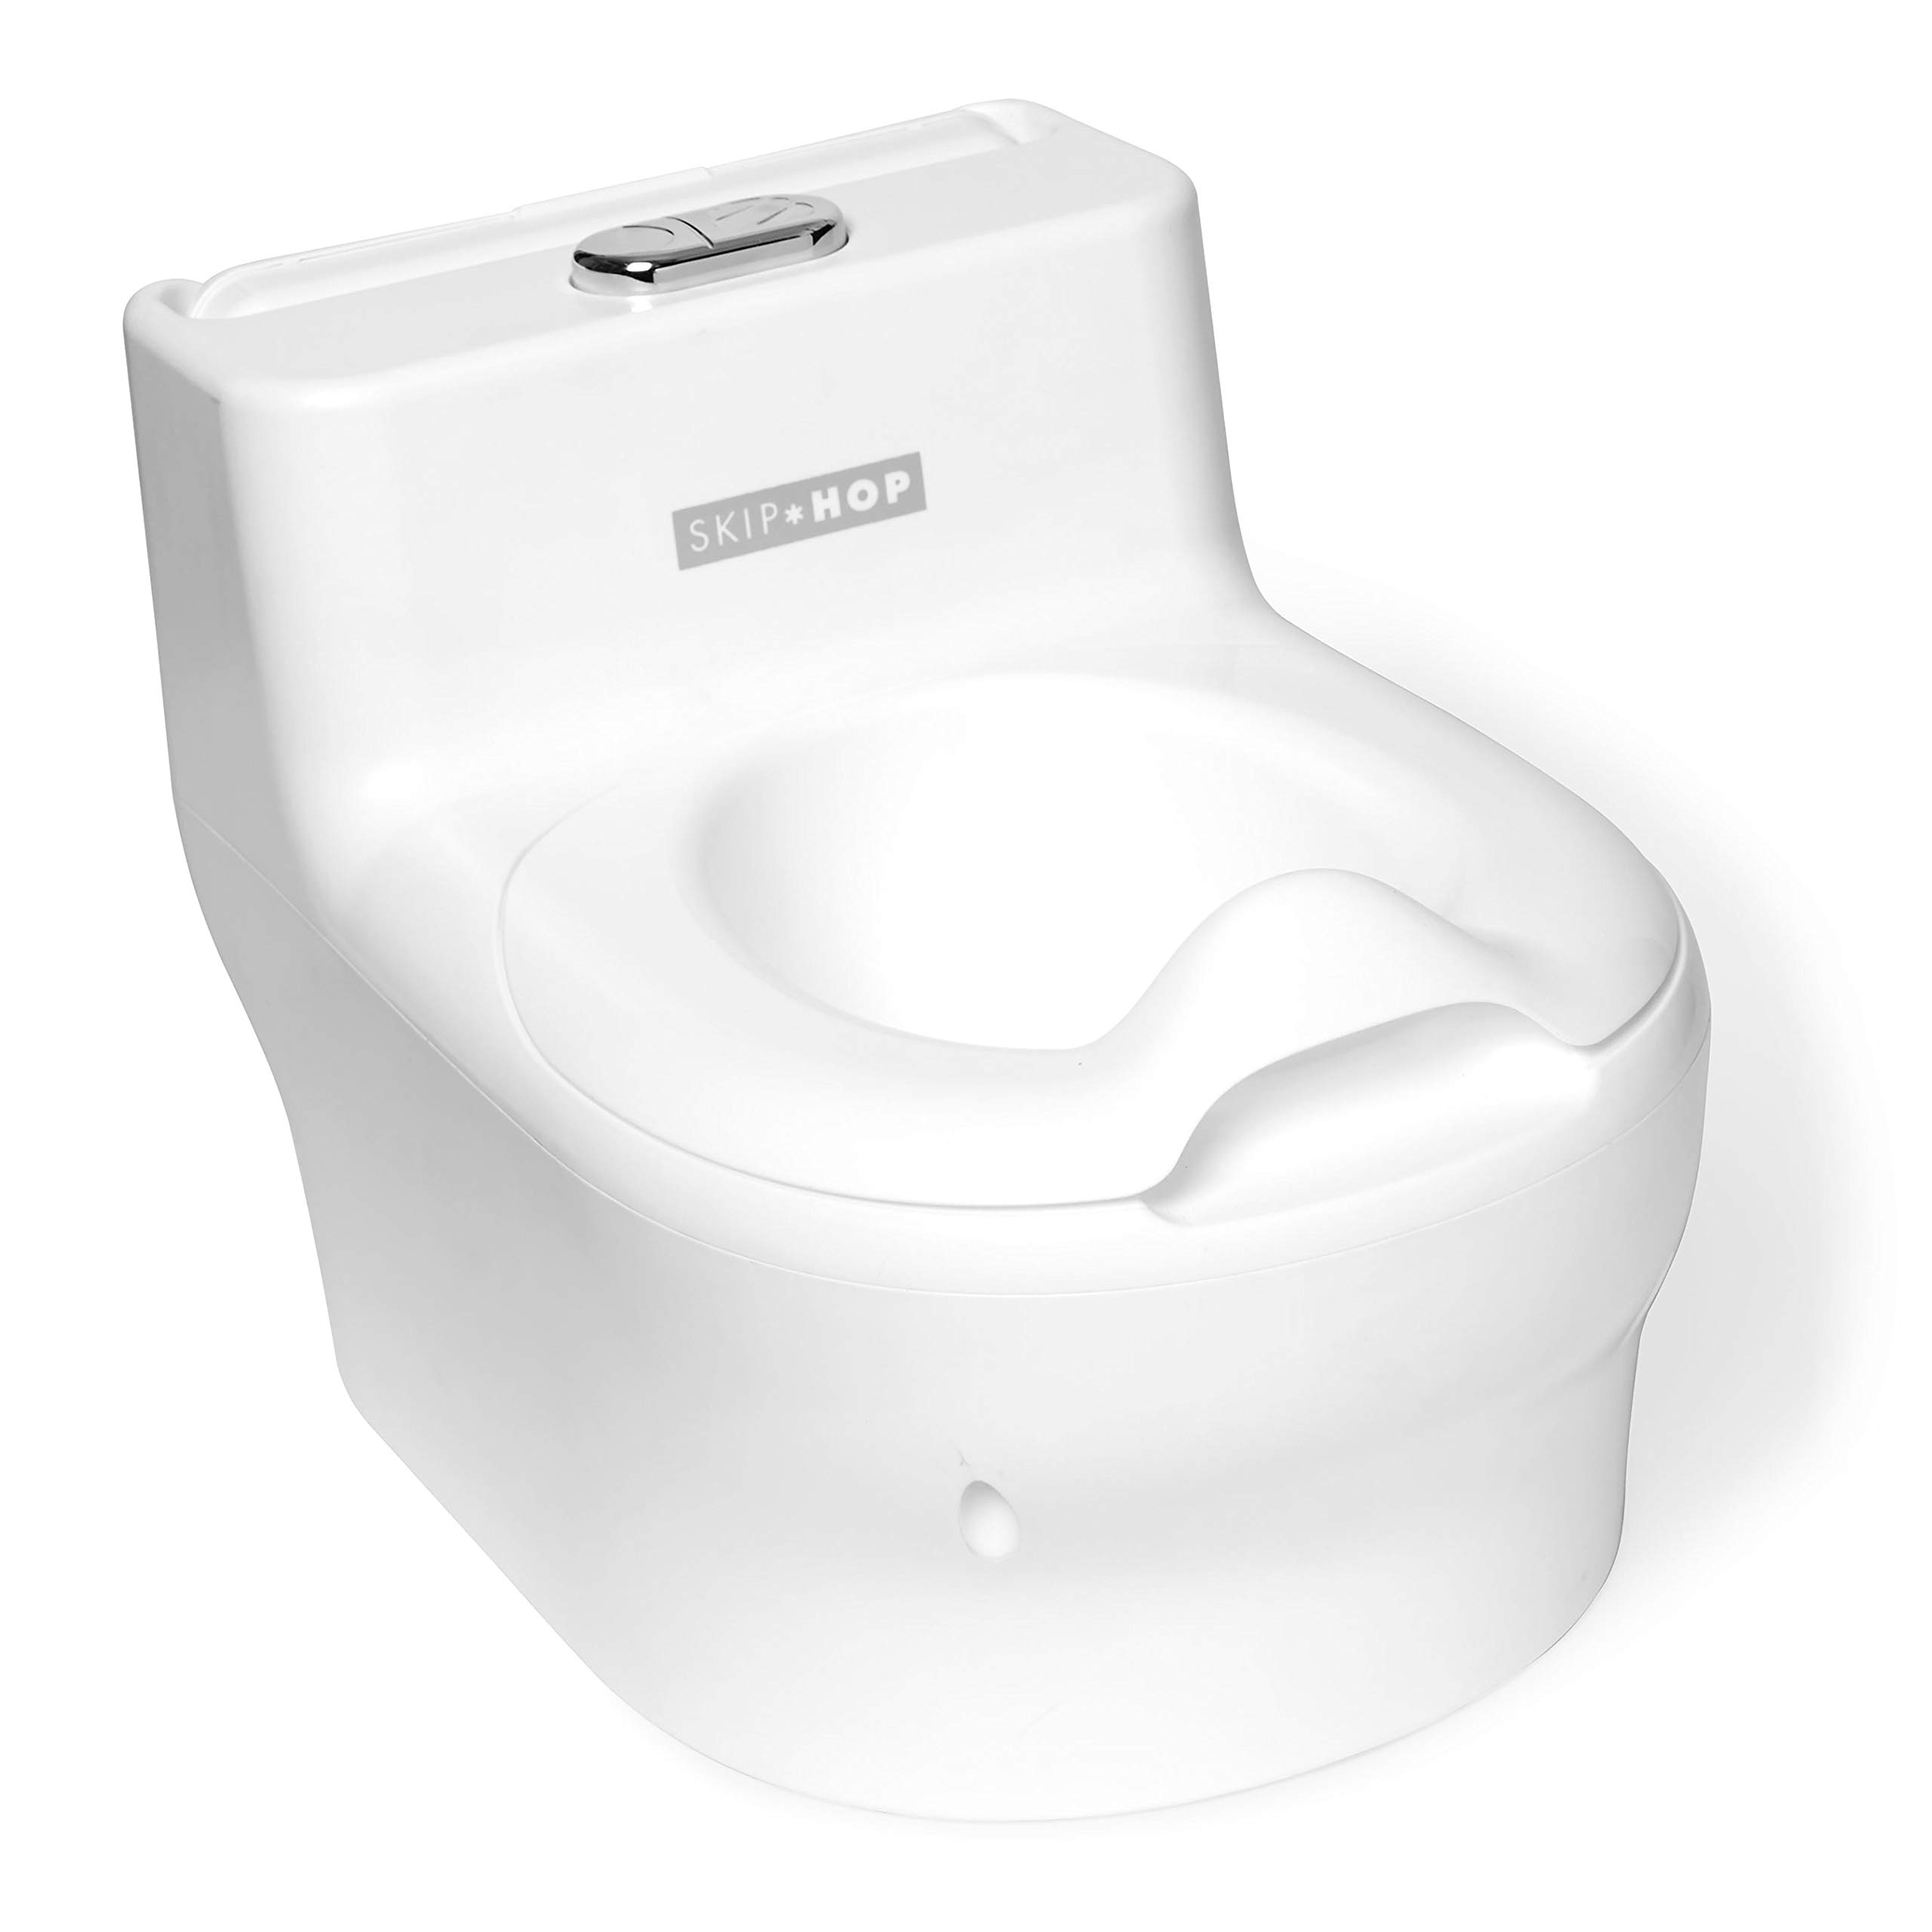 Skip Hop Potty Training Toilet with Easy Clean Coating & Baby Wipes Holder, White